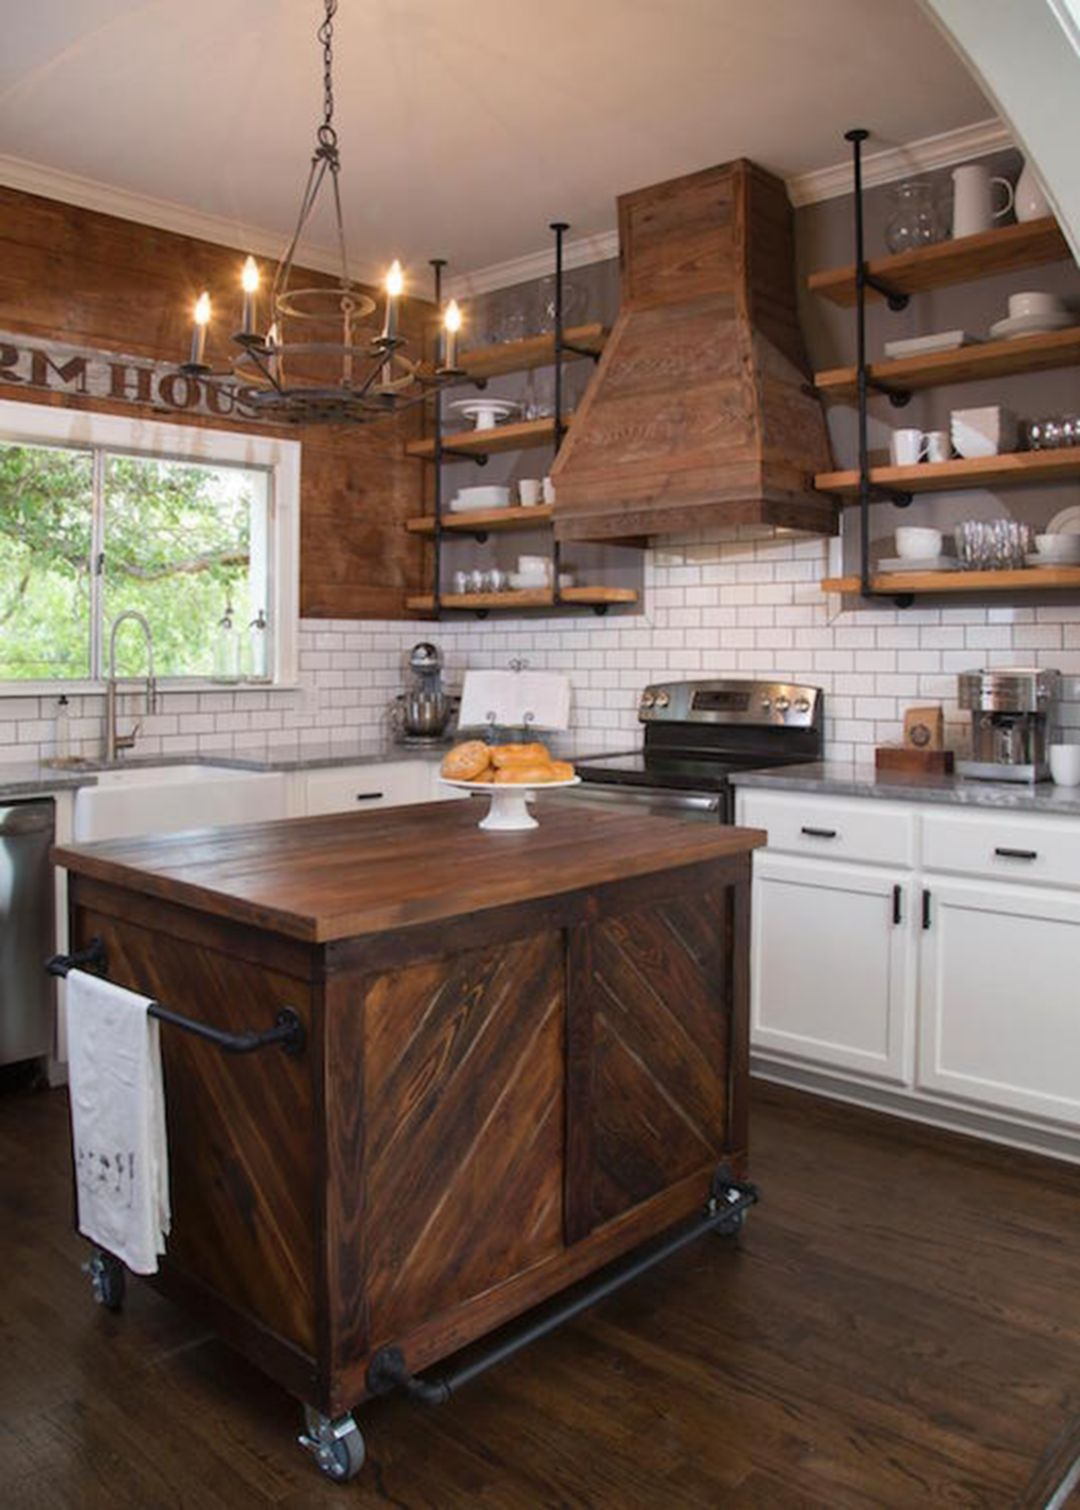 chic fixer upper rustic kitchen for kitchen renovation ideas